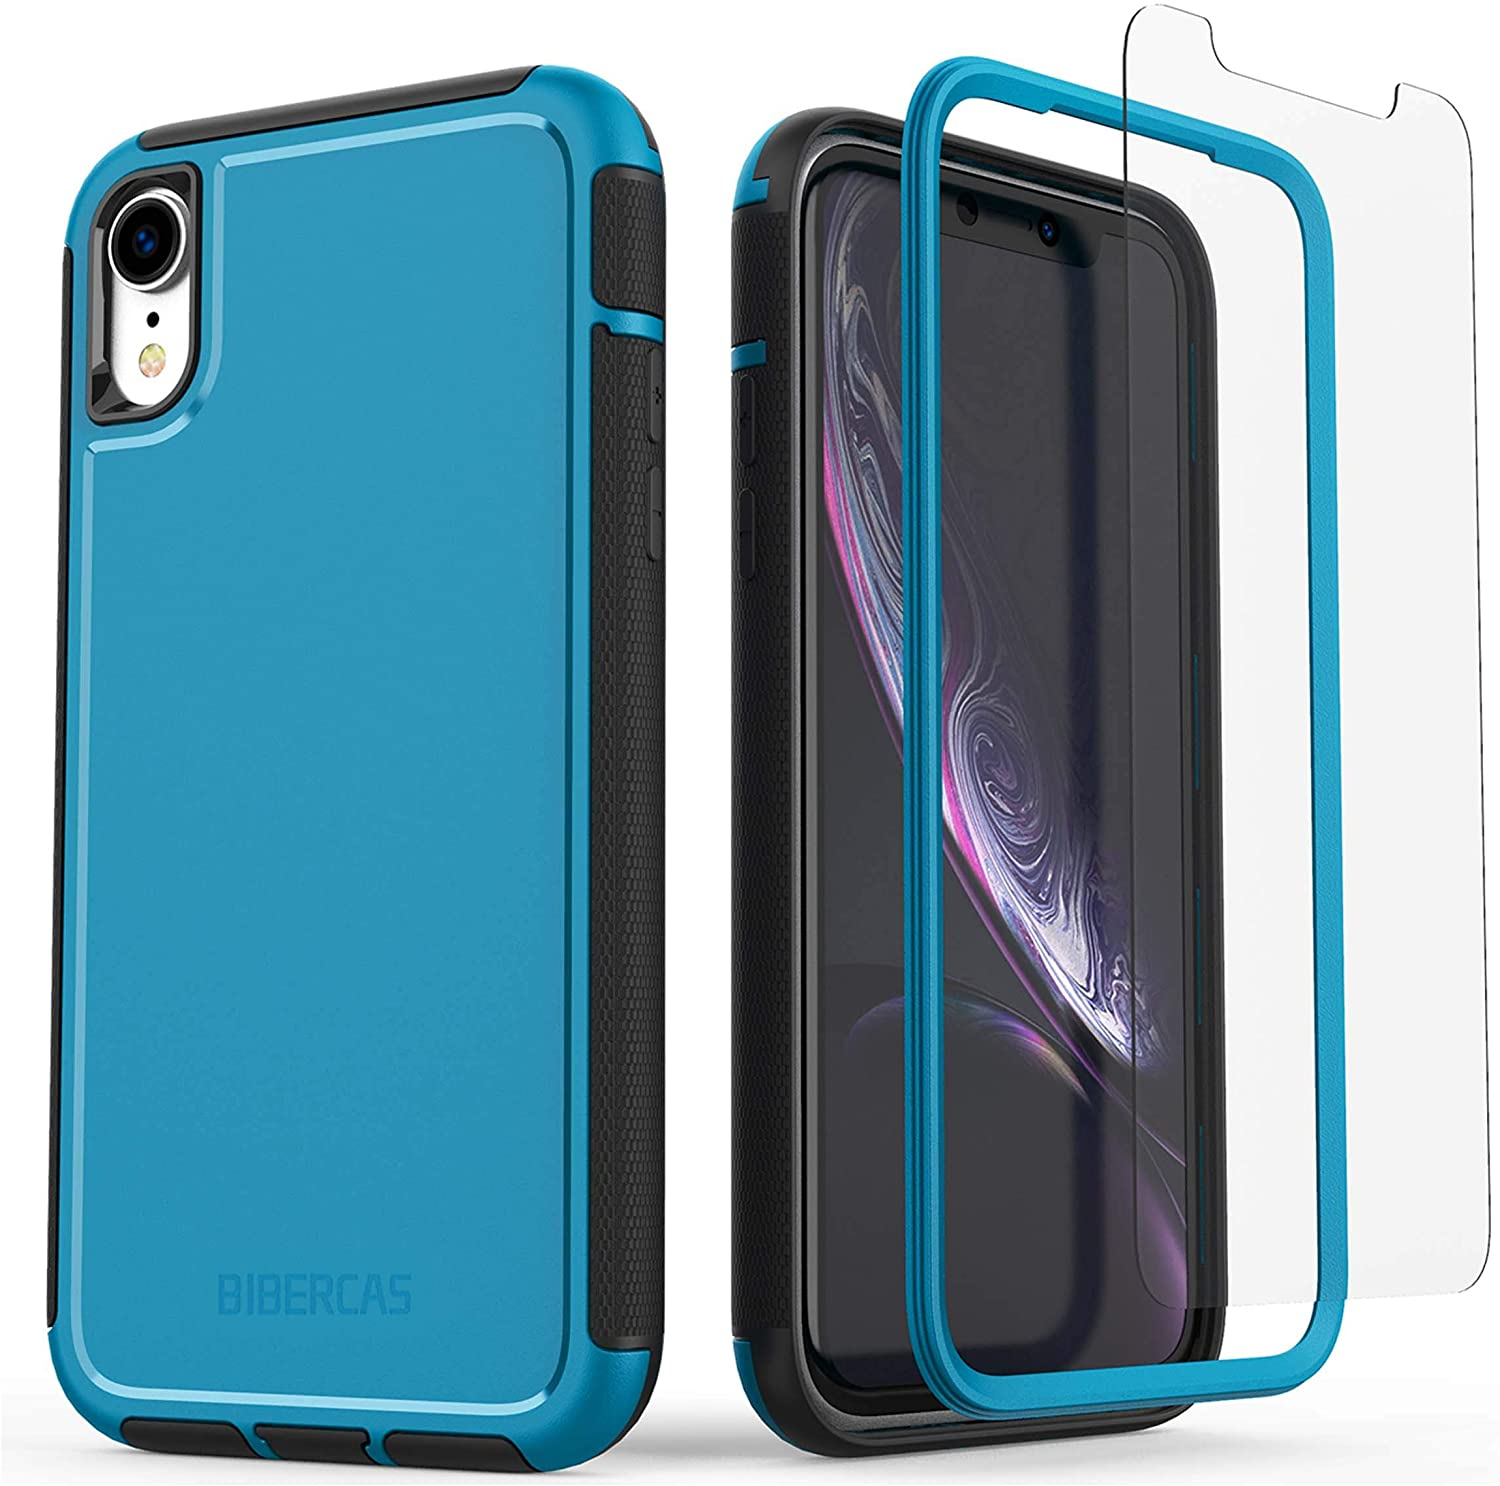 BIBERCAS iPhone XR Case Matte,Military Grade Drop Protection Defense Hard PC Back iPhone XR Case with Screen Protector,Full Body Shockproof Protective Cover Case for iPhone XR,6.1 inch